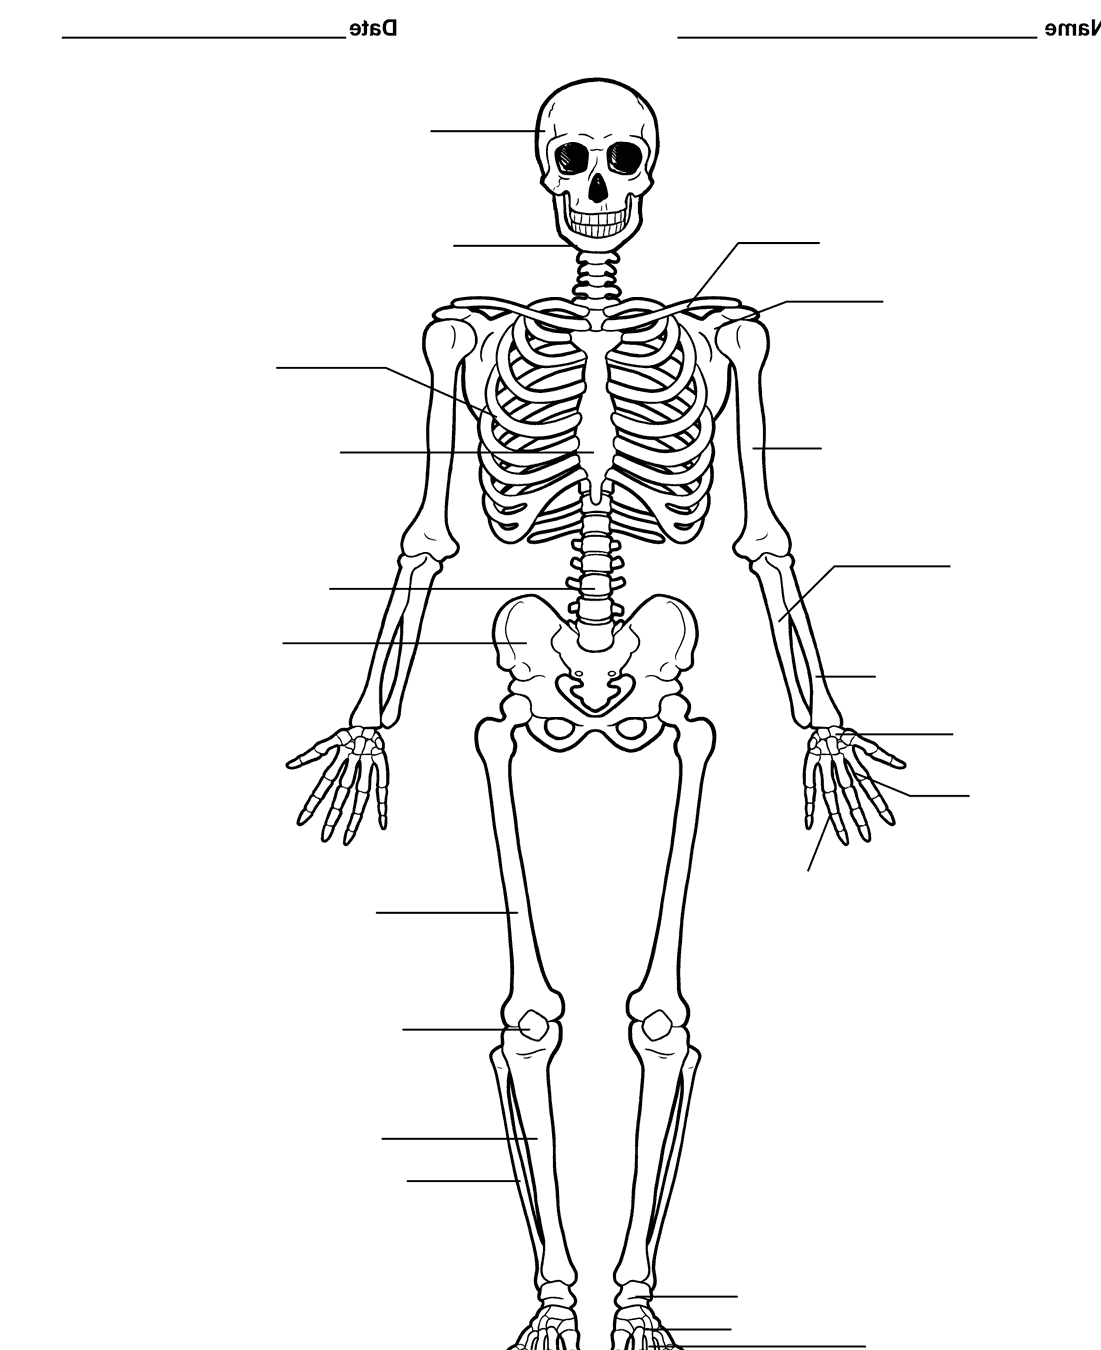 Pictures Of The Skeletal System Labeled 160e on fox diagram drawing